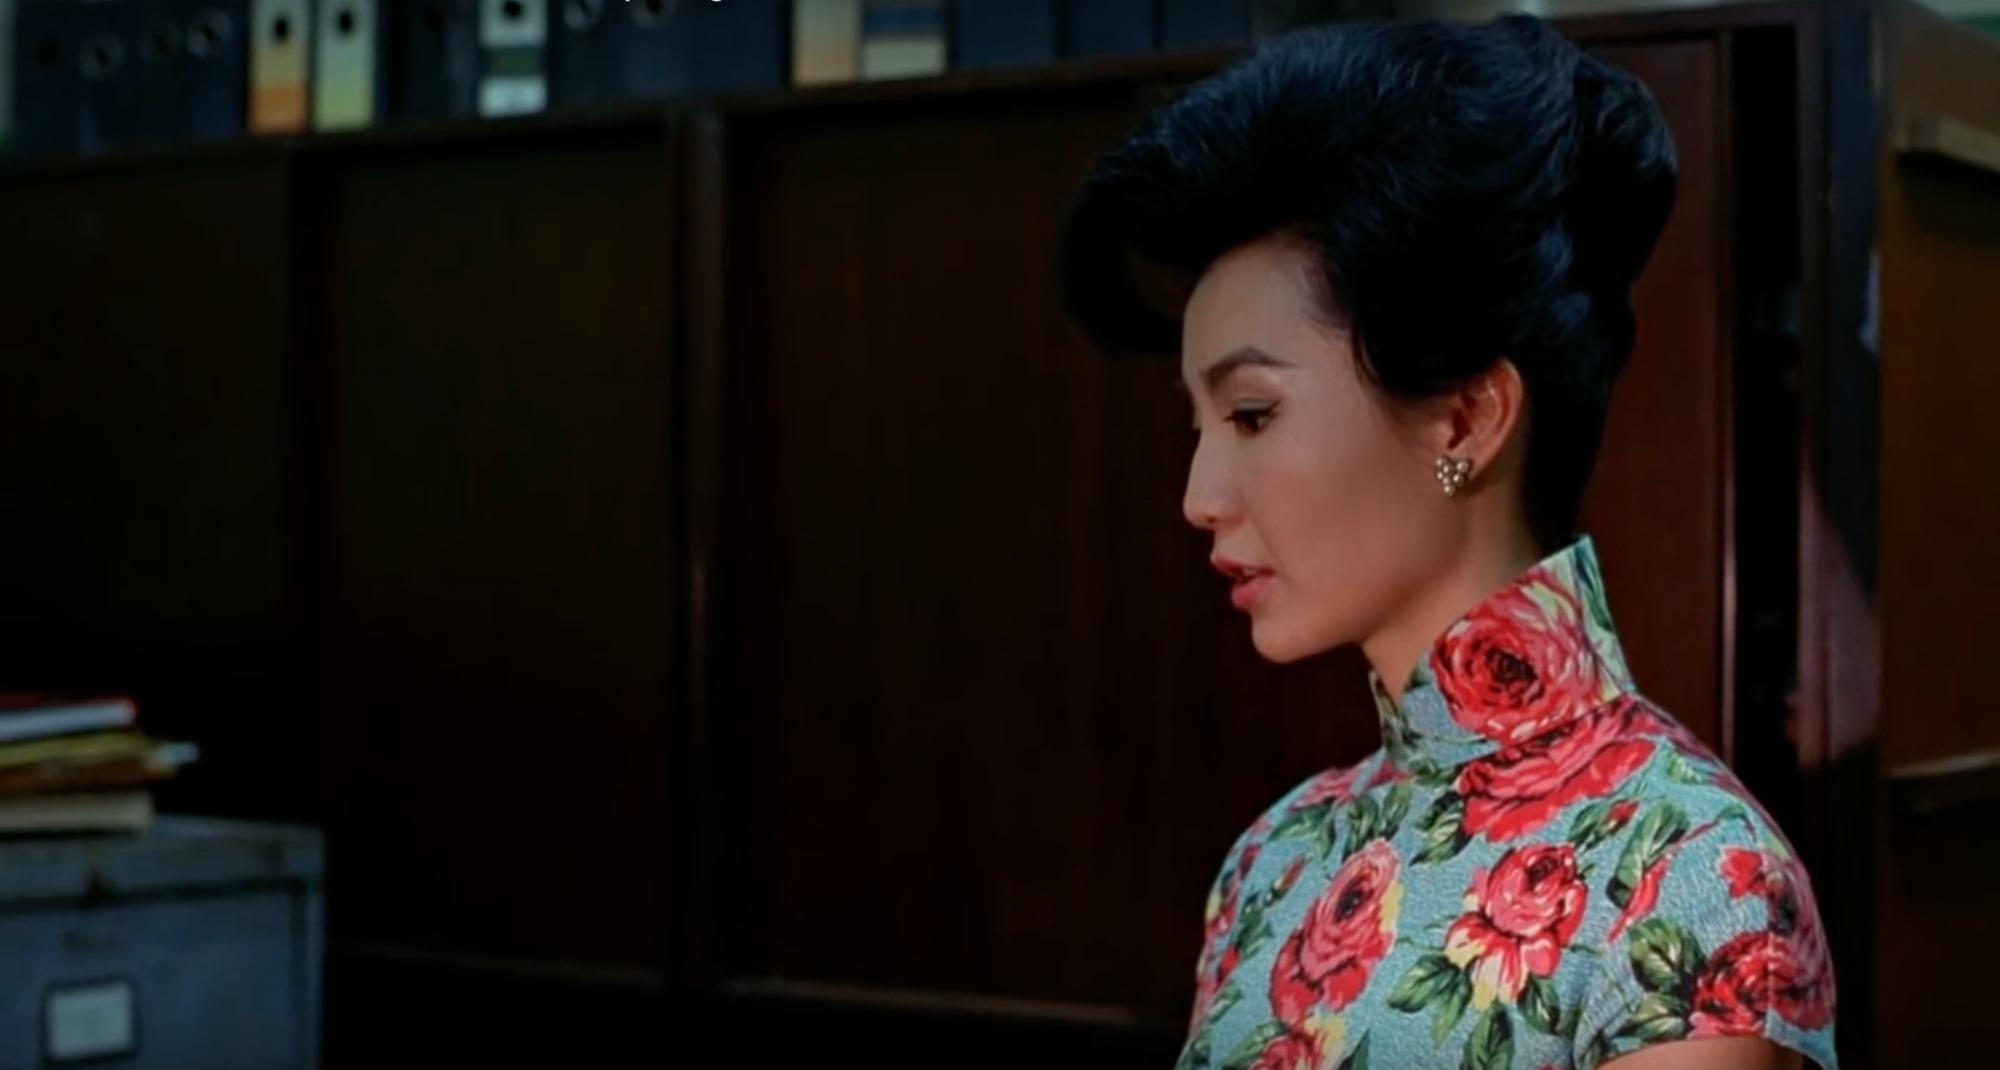 23224fe97 In the Mood for Love dresses: the complete list of 20 qipaos (cheongsams).  Qipao films